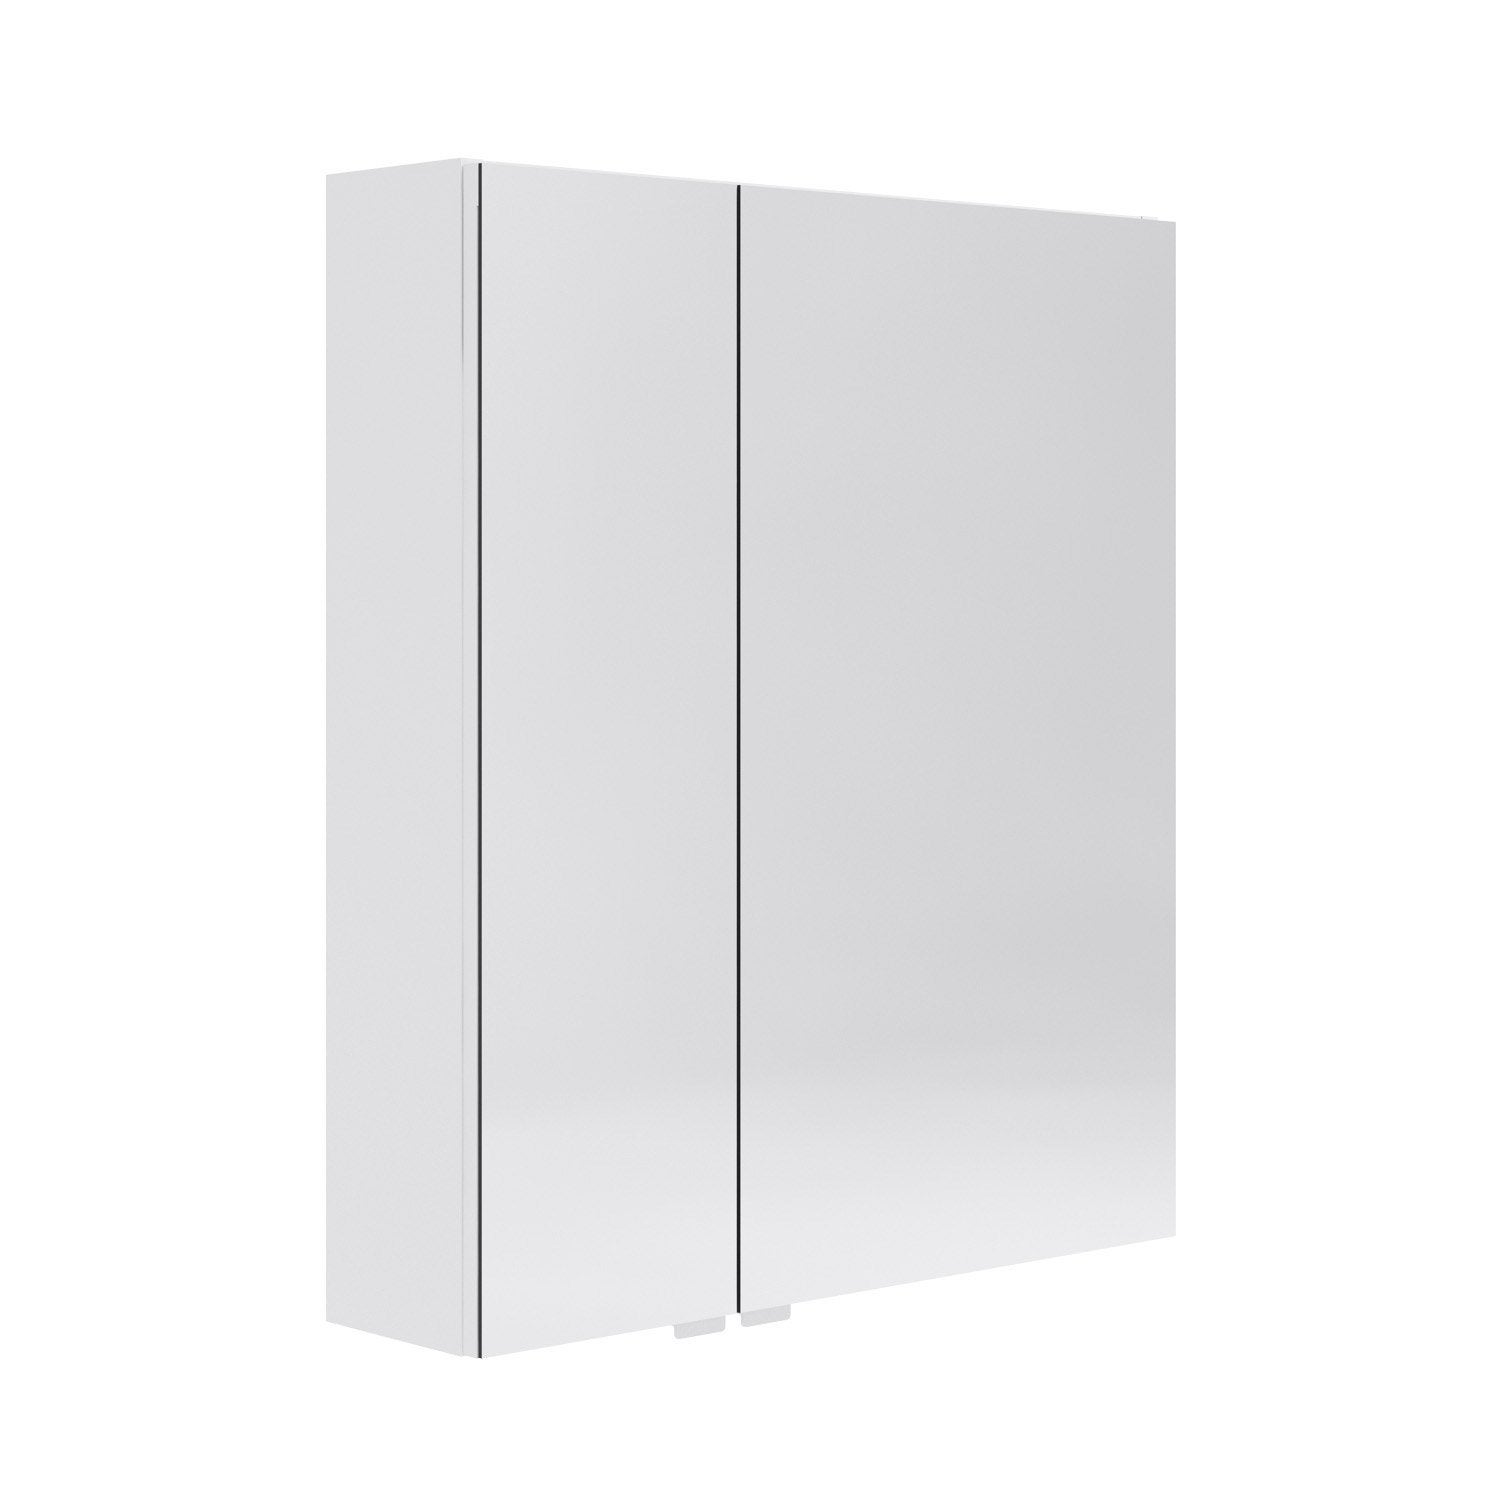 armoire de toilette l 60 cm blanc opale leroy merlin. Black Bedroom Furniture Sets. Home Design Ideas